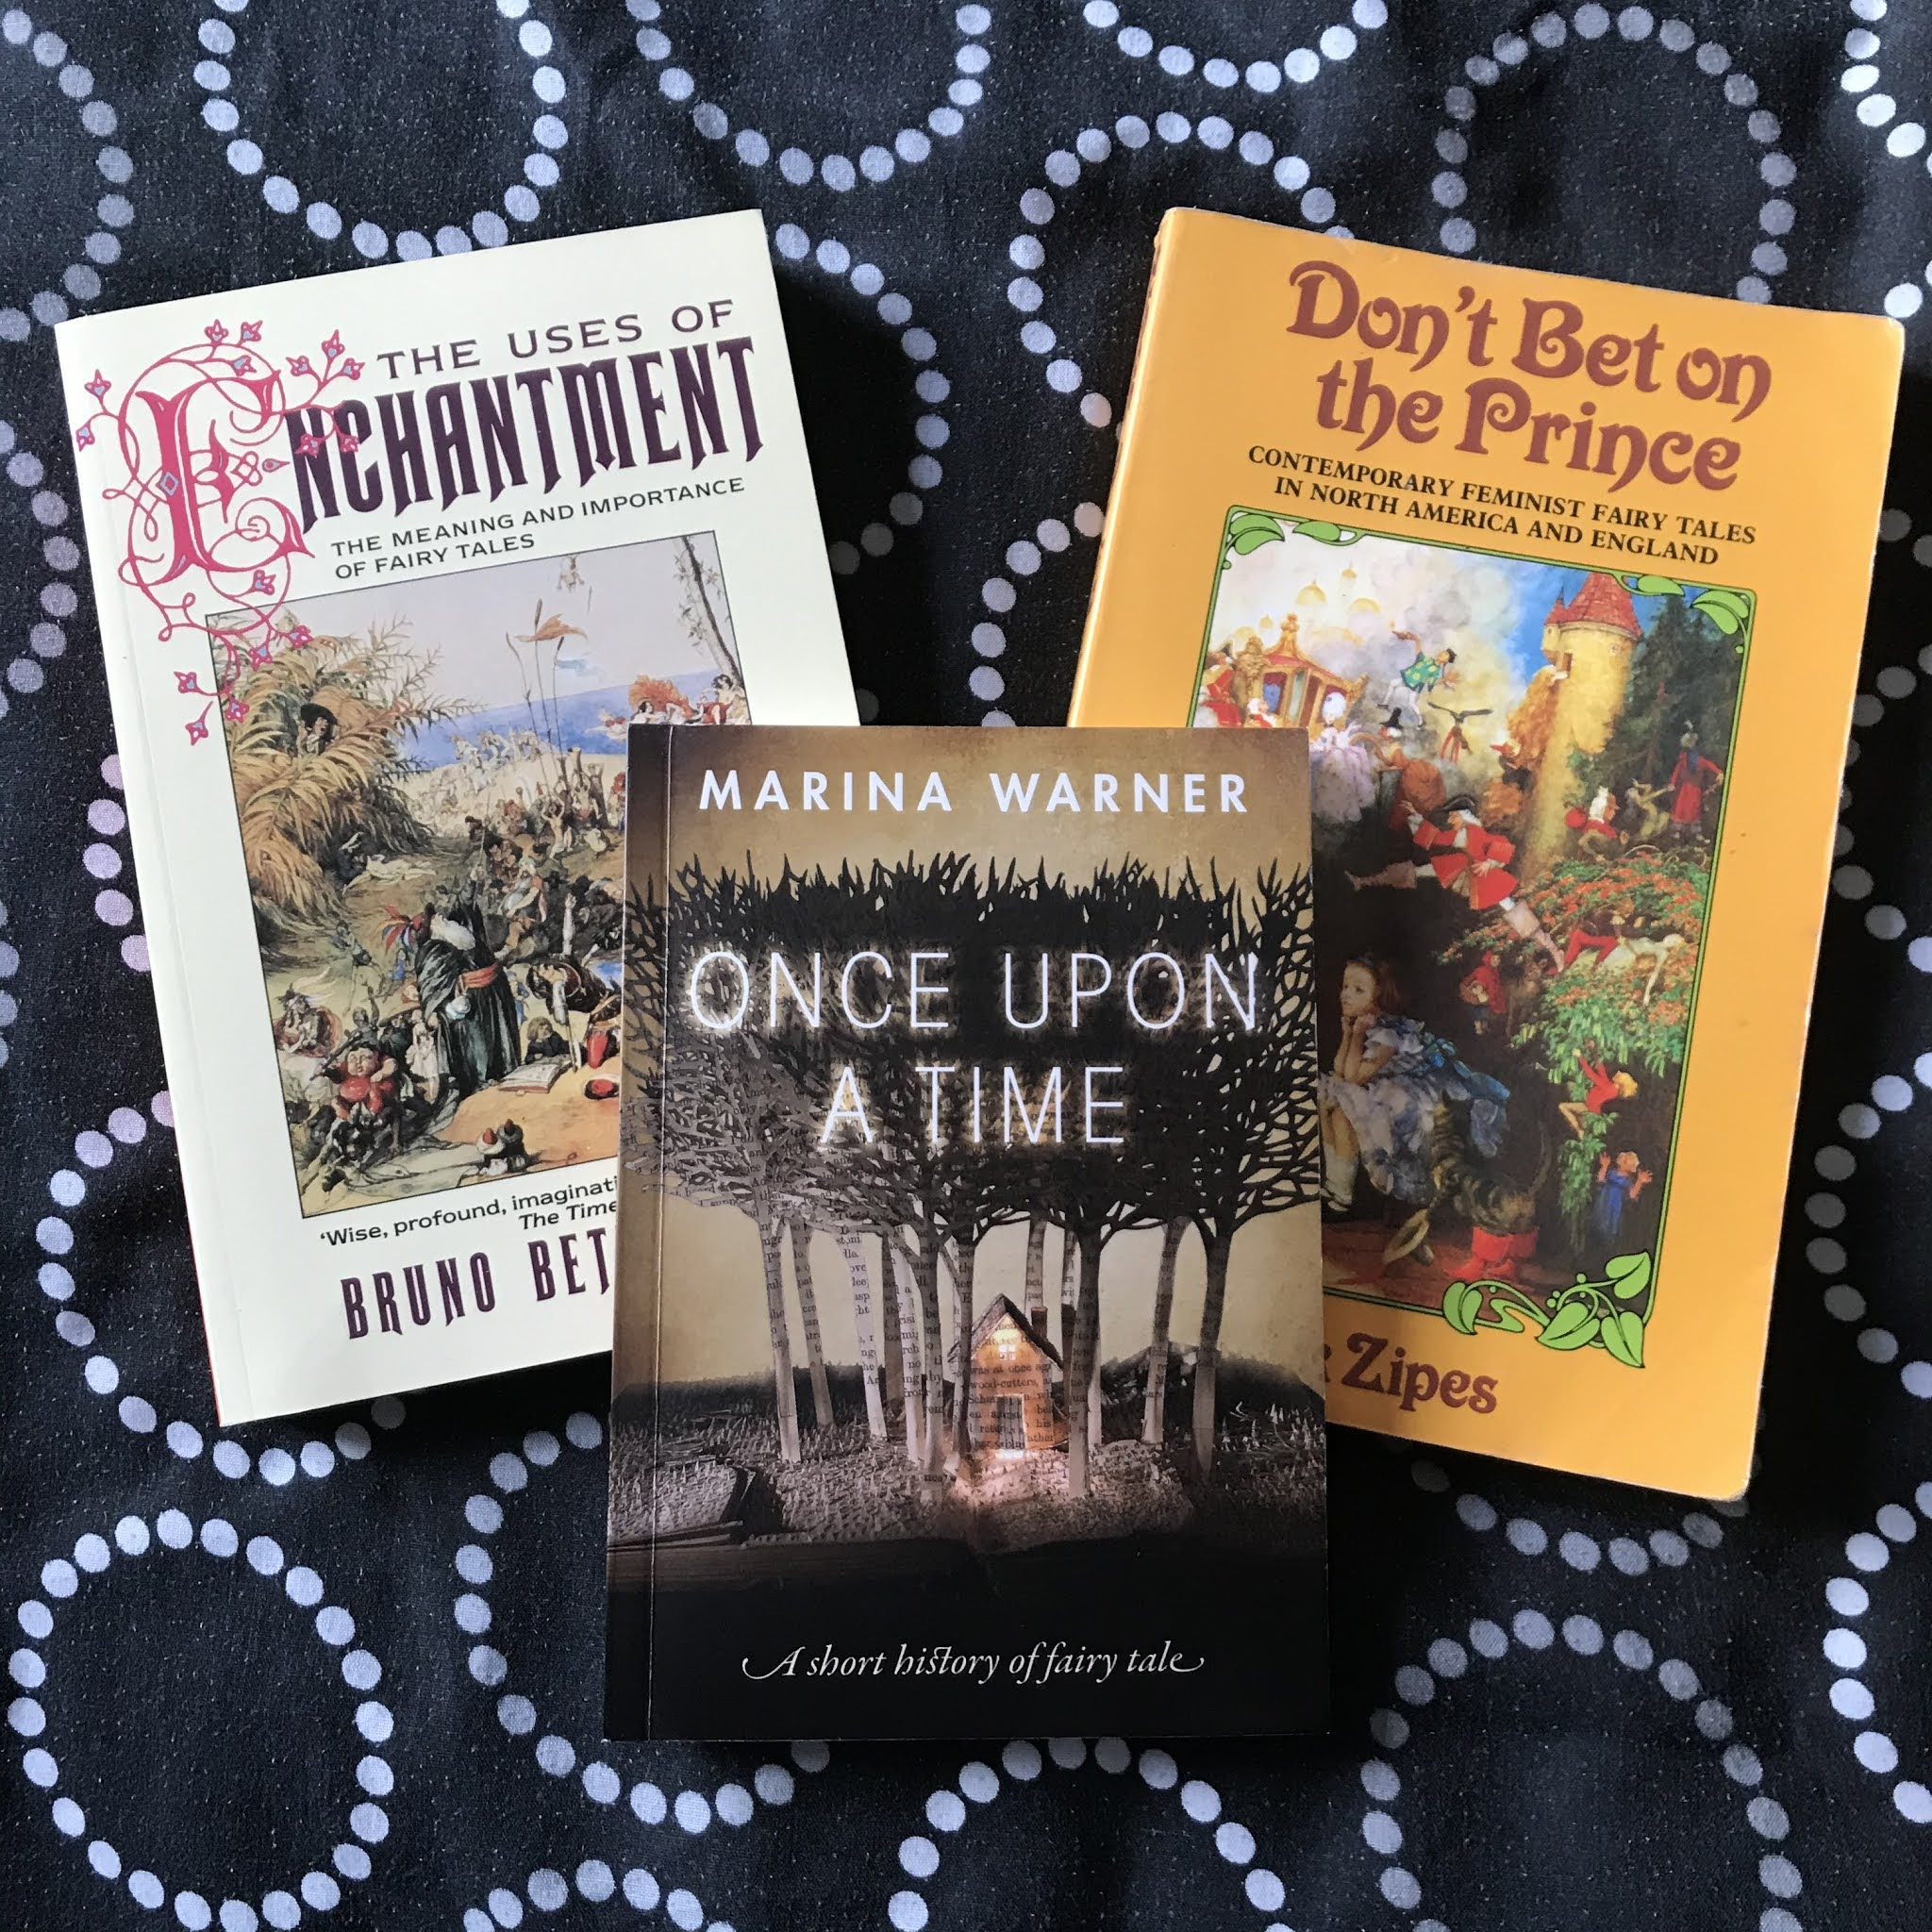 A photo of The Uses of Enchantment by Bruno Bettelheim, Once Upon a Time by Marina Warner, and Don't Bet on the Prince by Jack Zipes